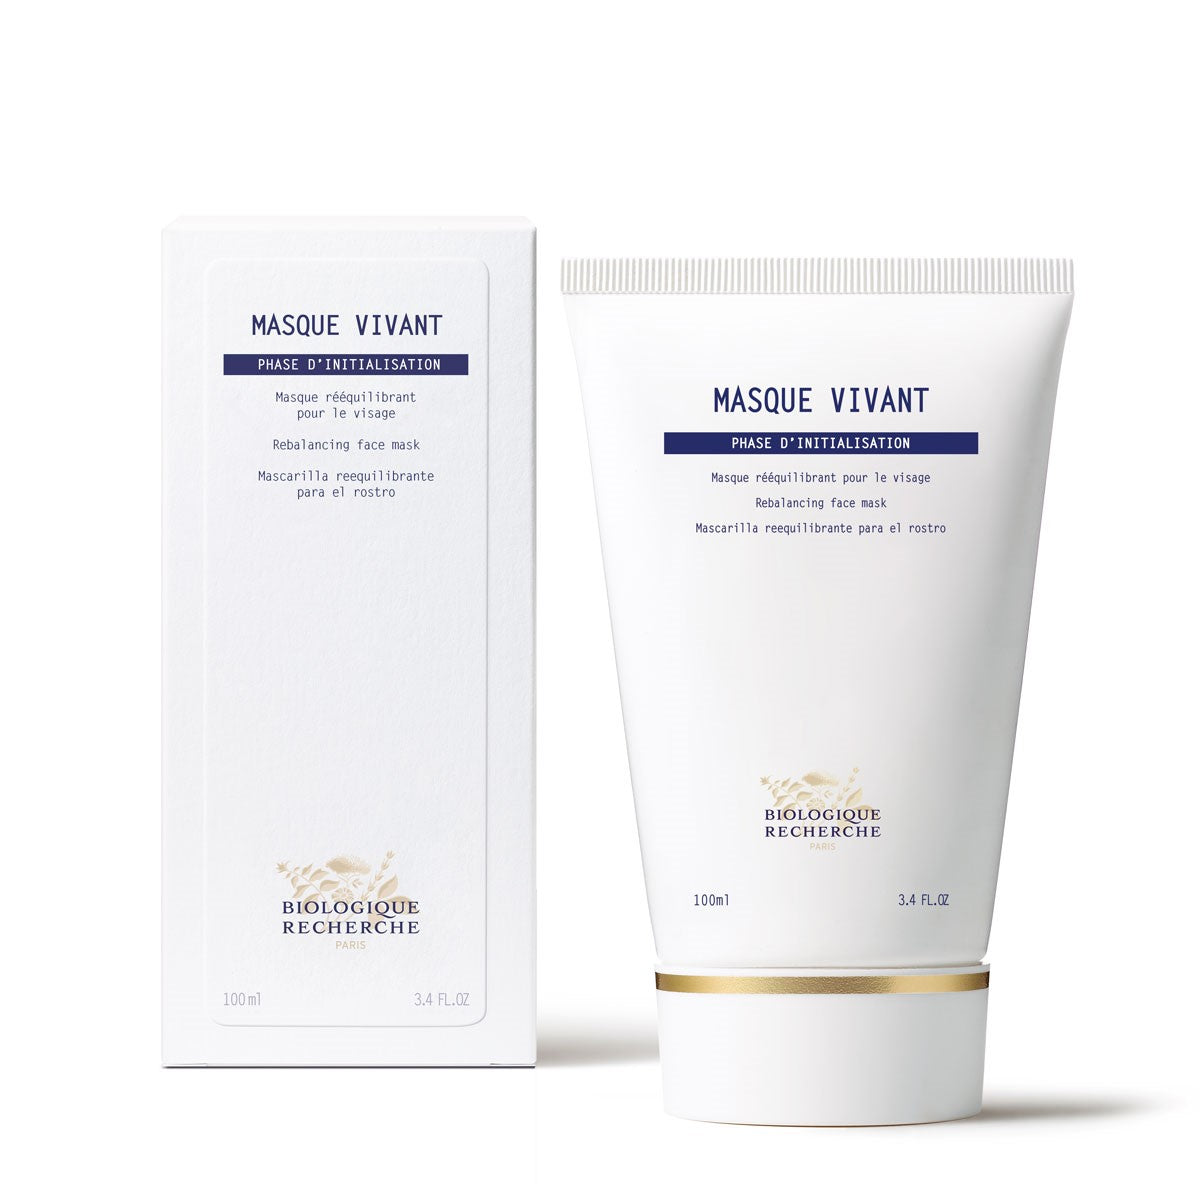 Masque Vivant -- Rebalancing Purifying Face Mask ** 3.4oz/100ml